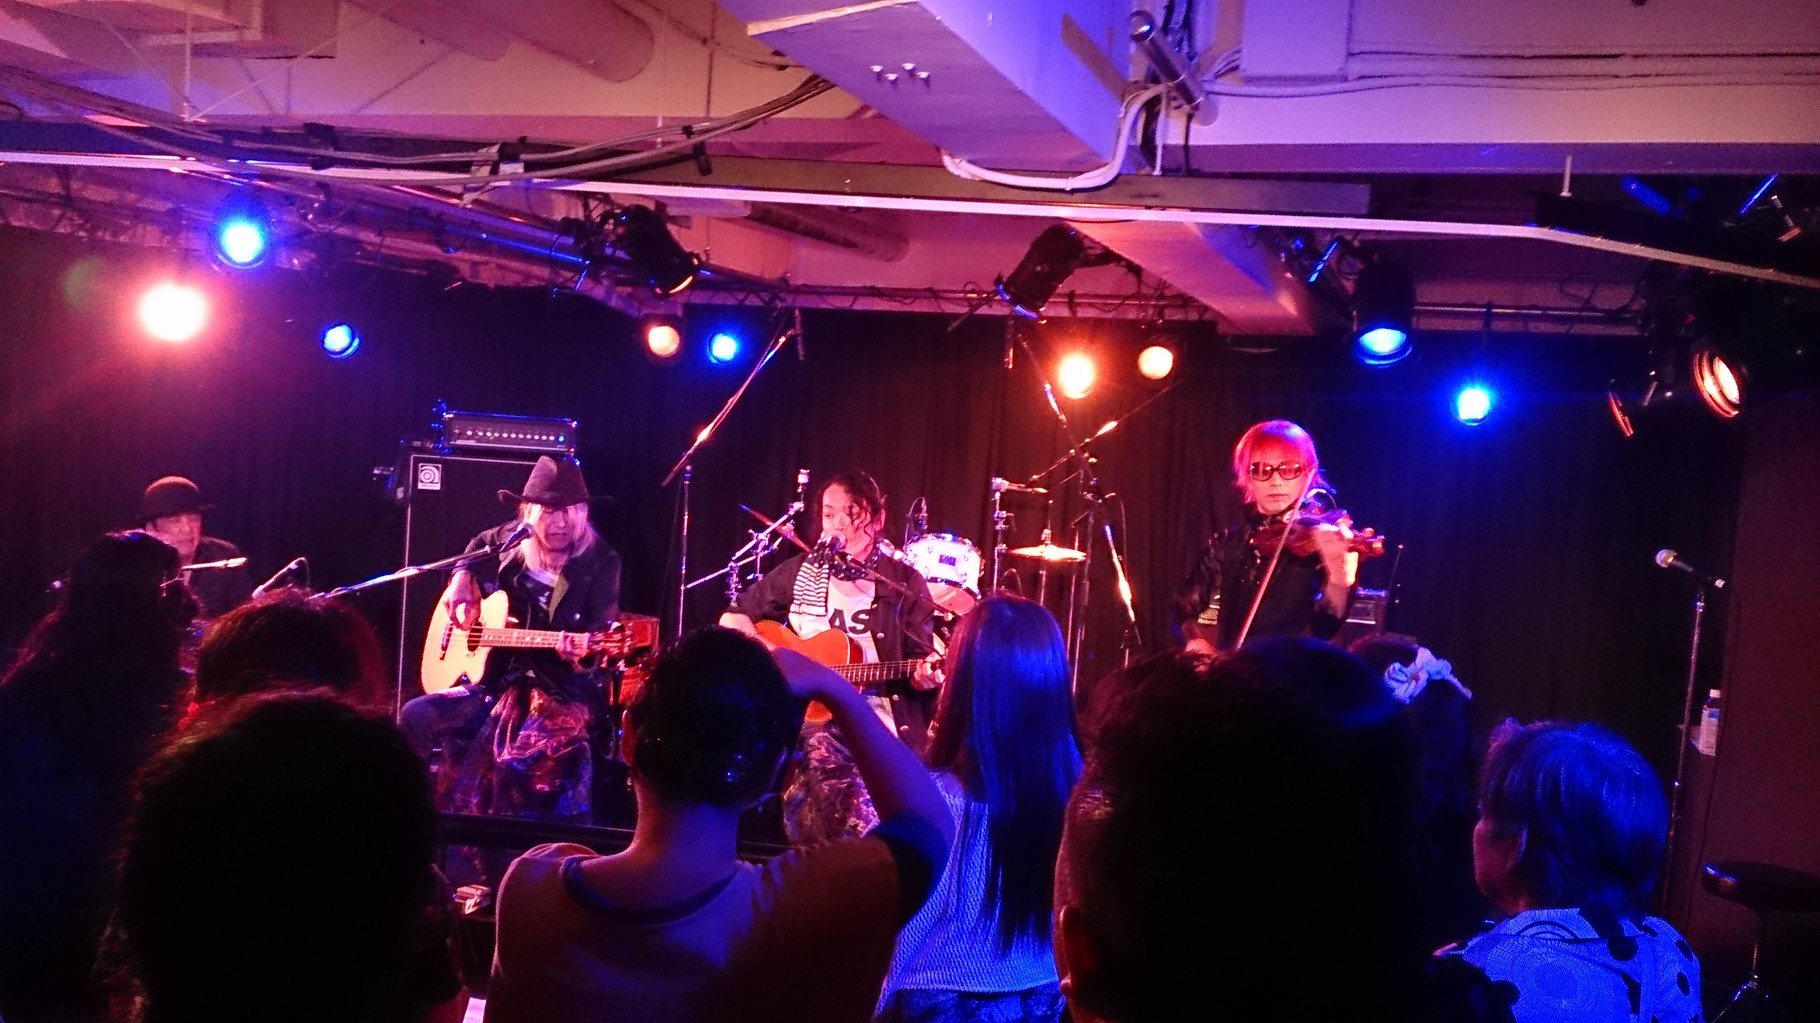 dead pan brothersさんのステージ写真(^-^)